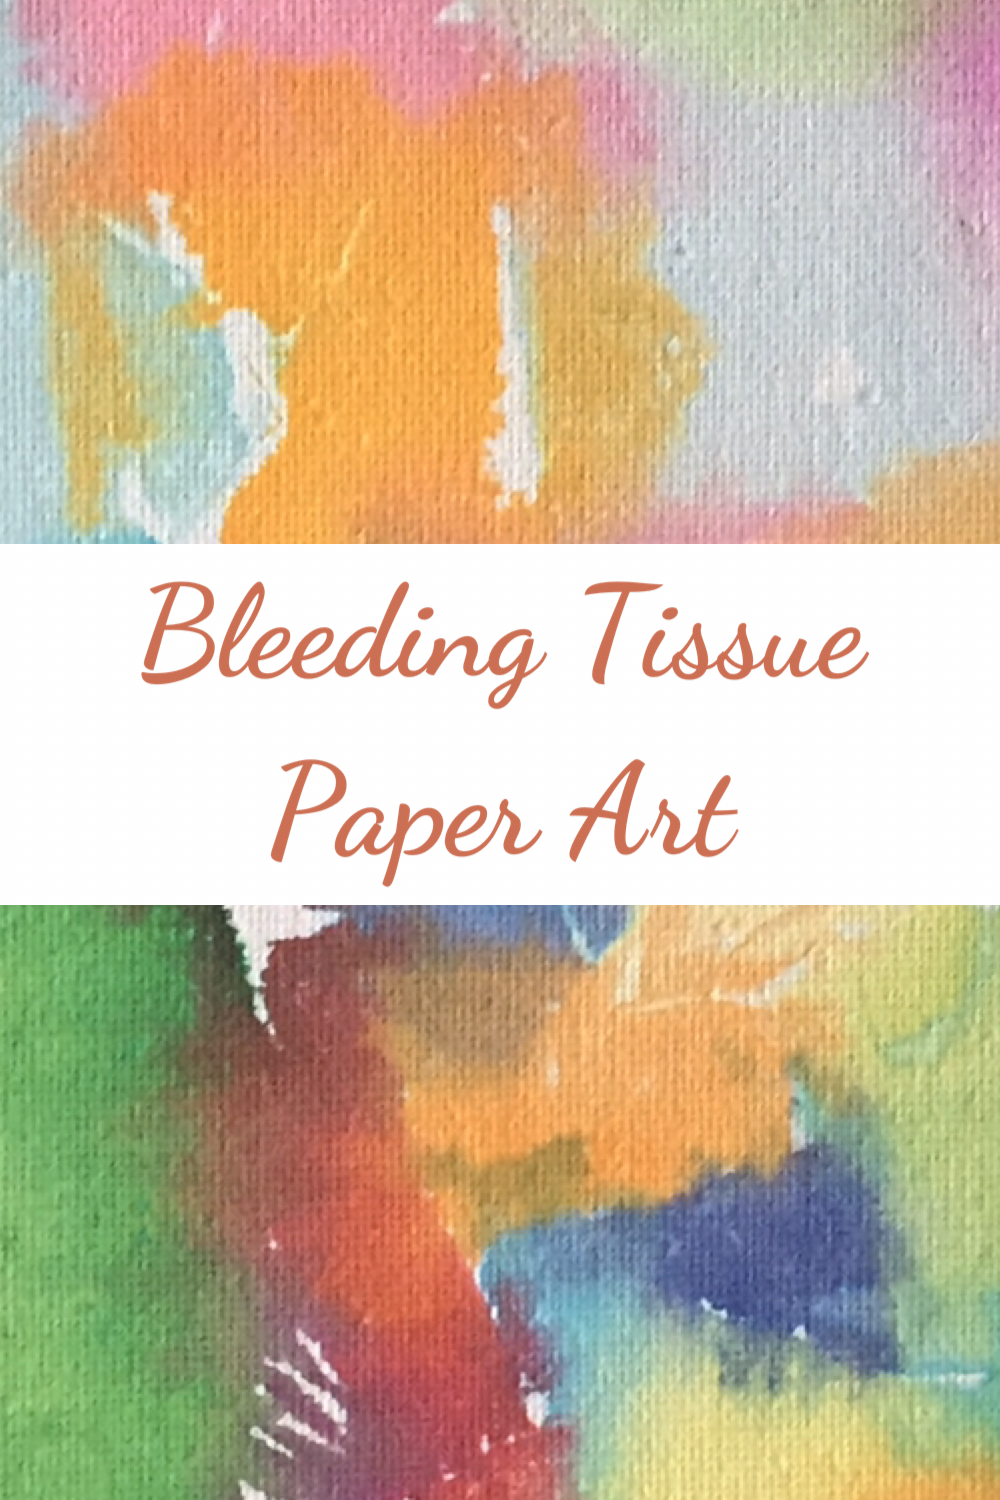 Bleeding Tissue Paper Art